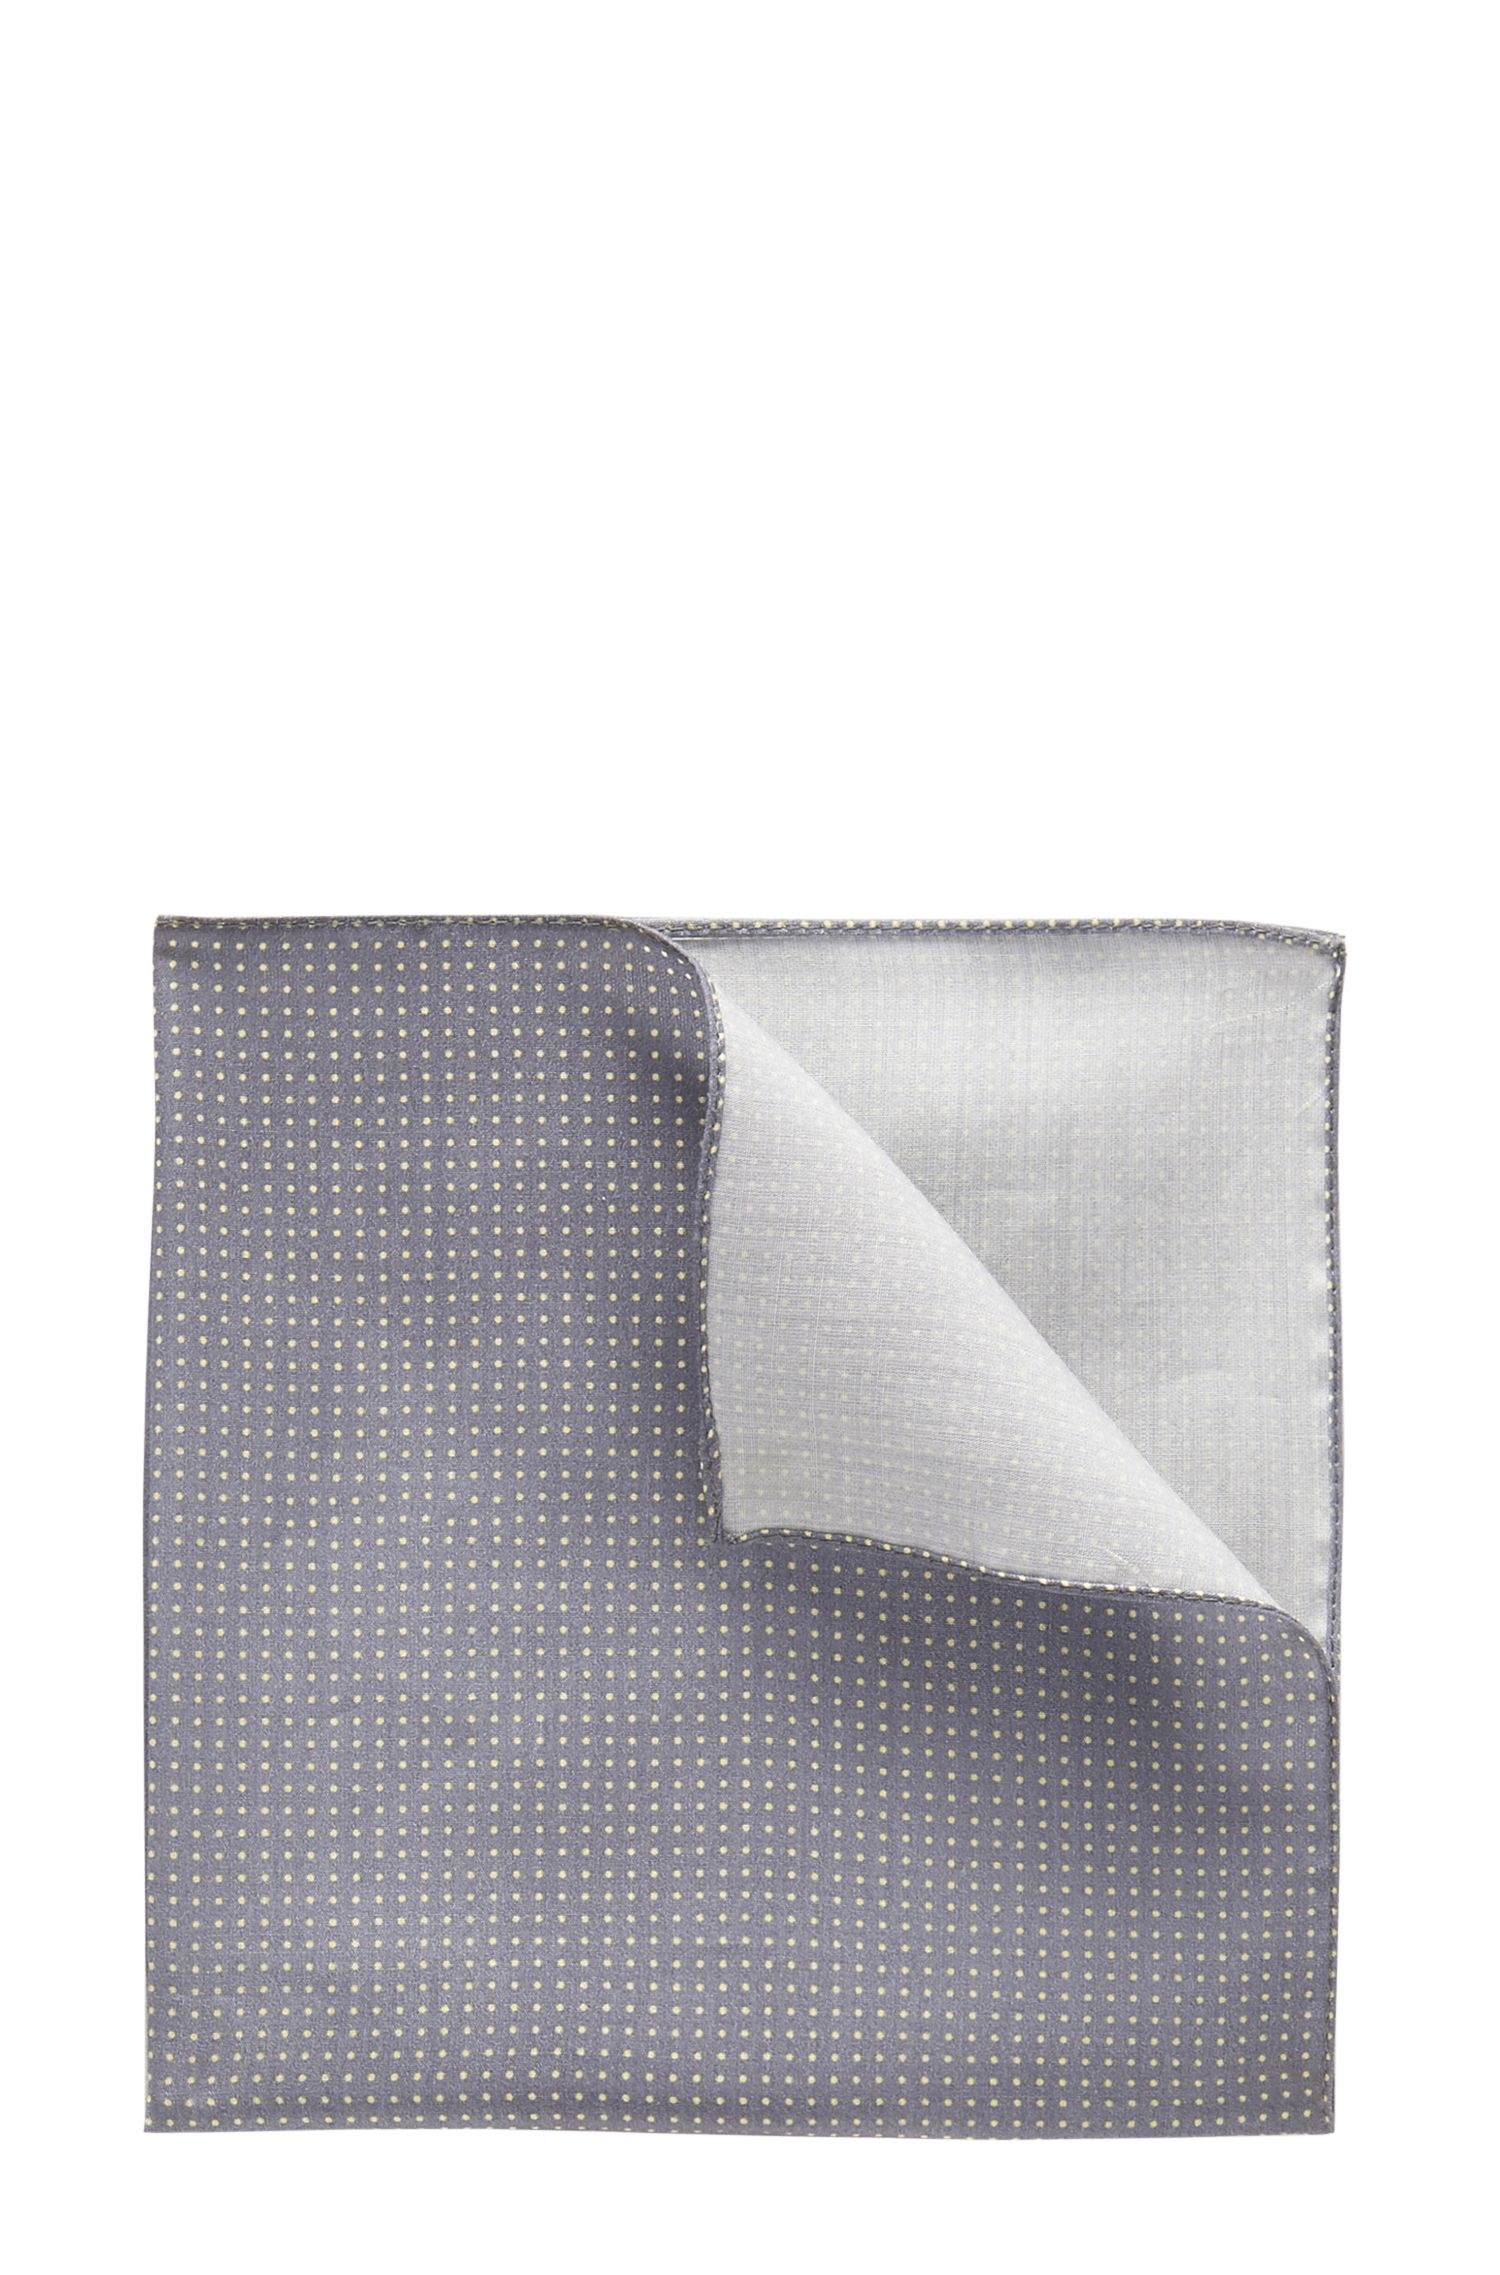 Pin Dot Pocket Square | Pocket sq. cm 33 x 33